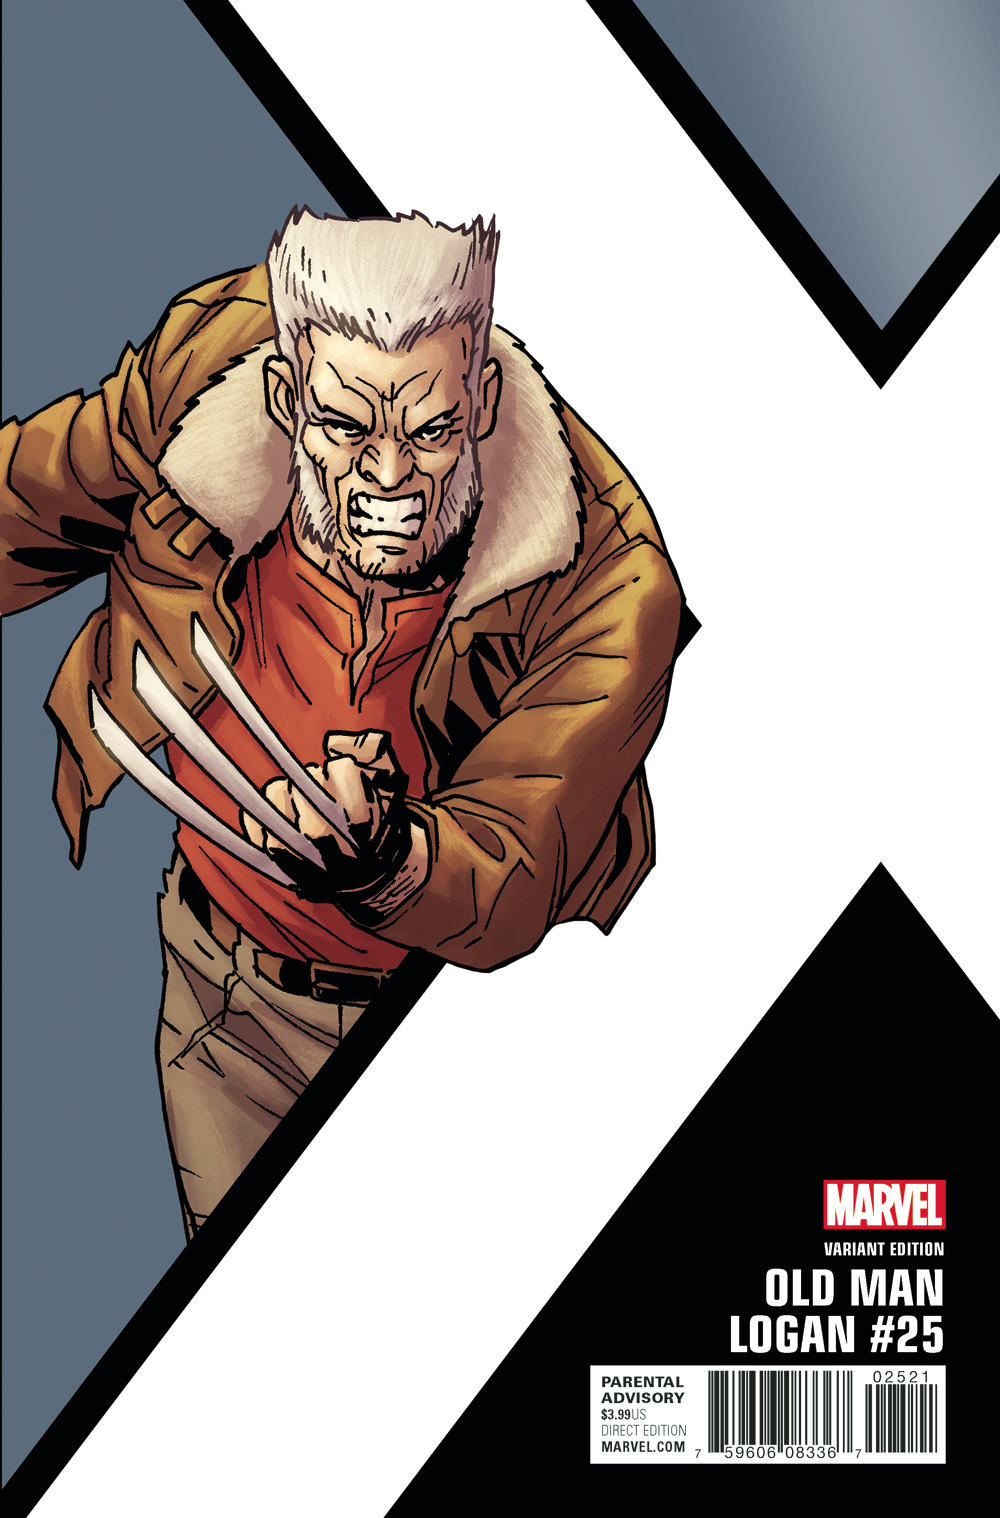 OLD MAN LOGAN #25 KIRK CORNER BOX VAR (MR)